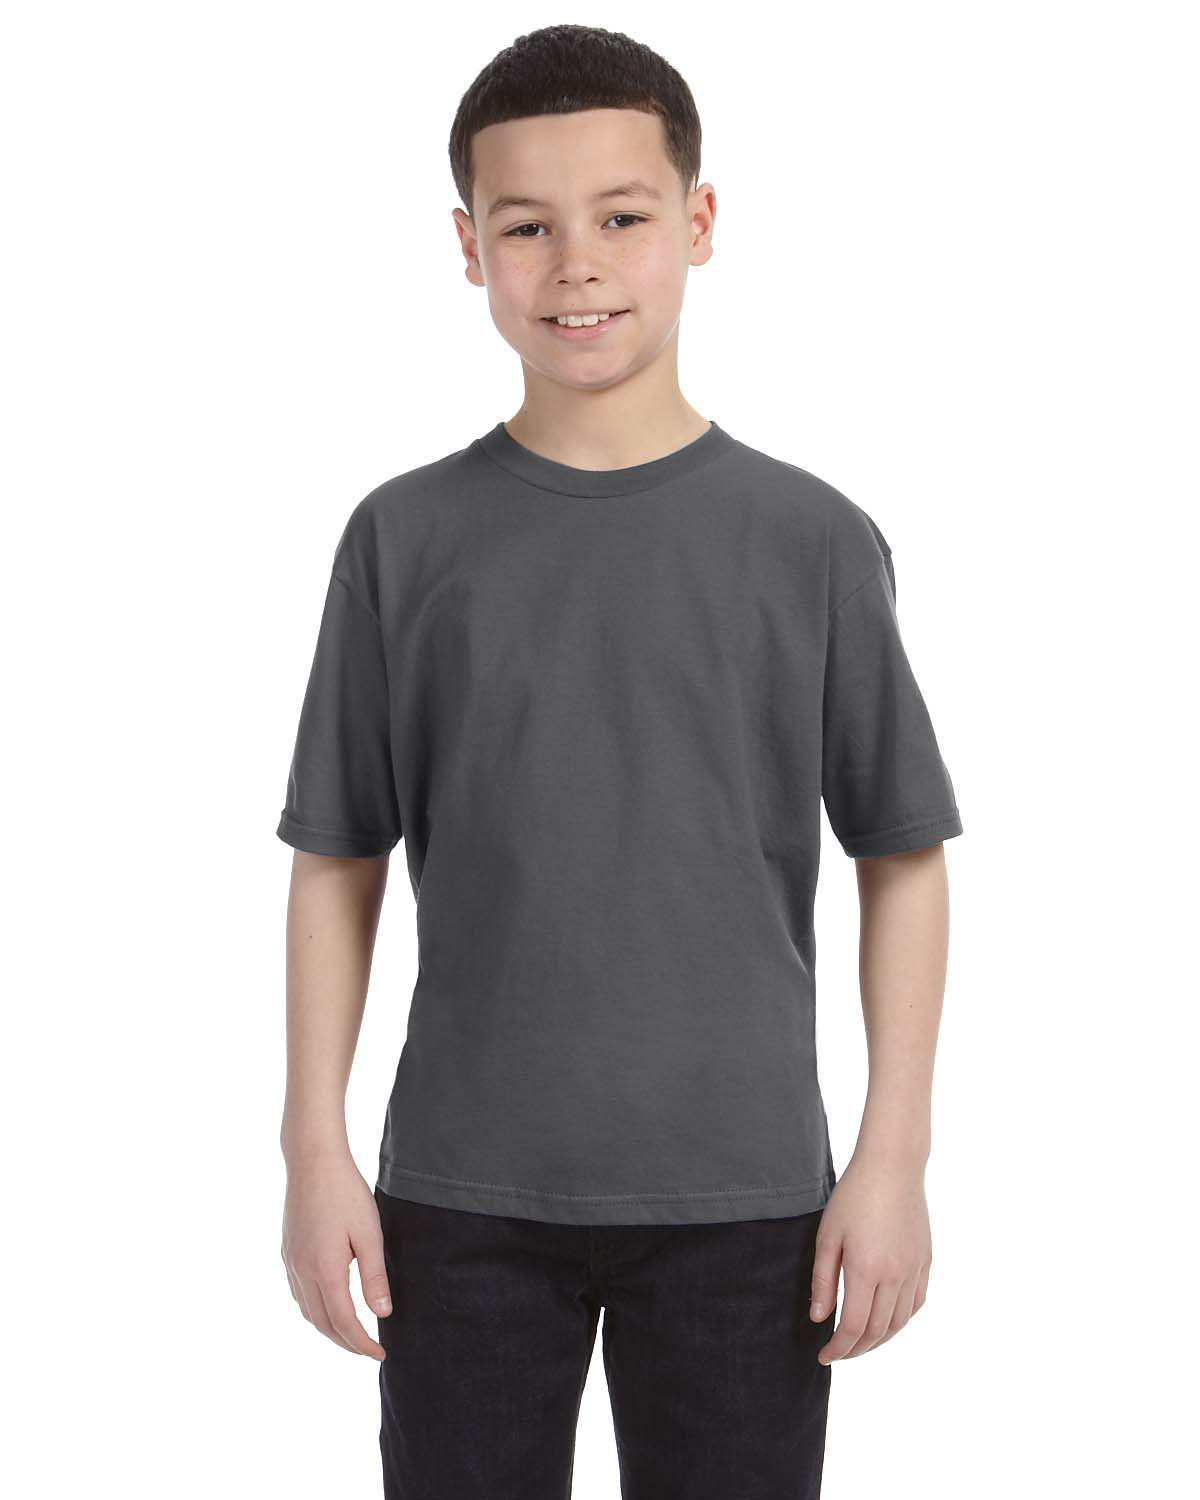 Anvil Youth Lightweight T-Shirt CHARCOAL